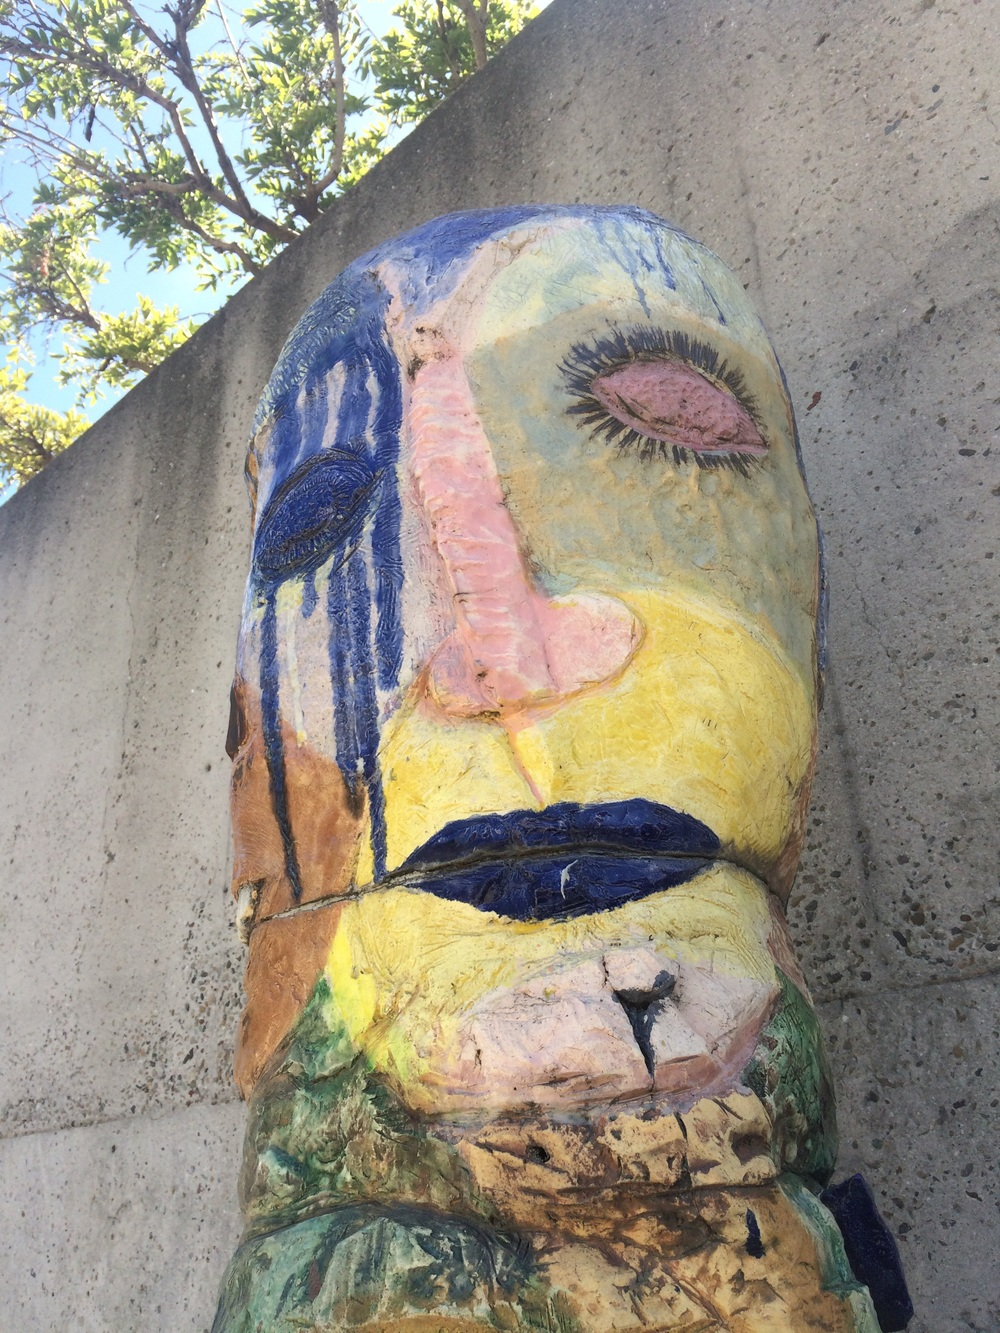 Oakland Museum of California. Sculpture garden. 21 August 2015.